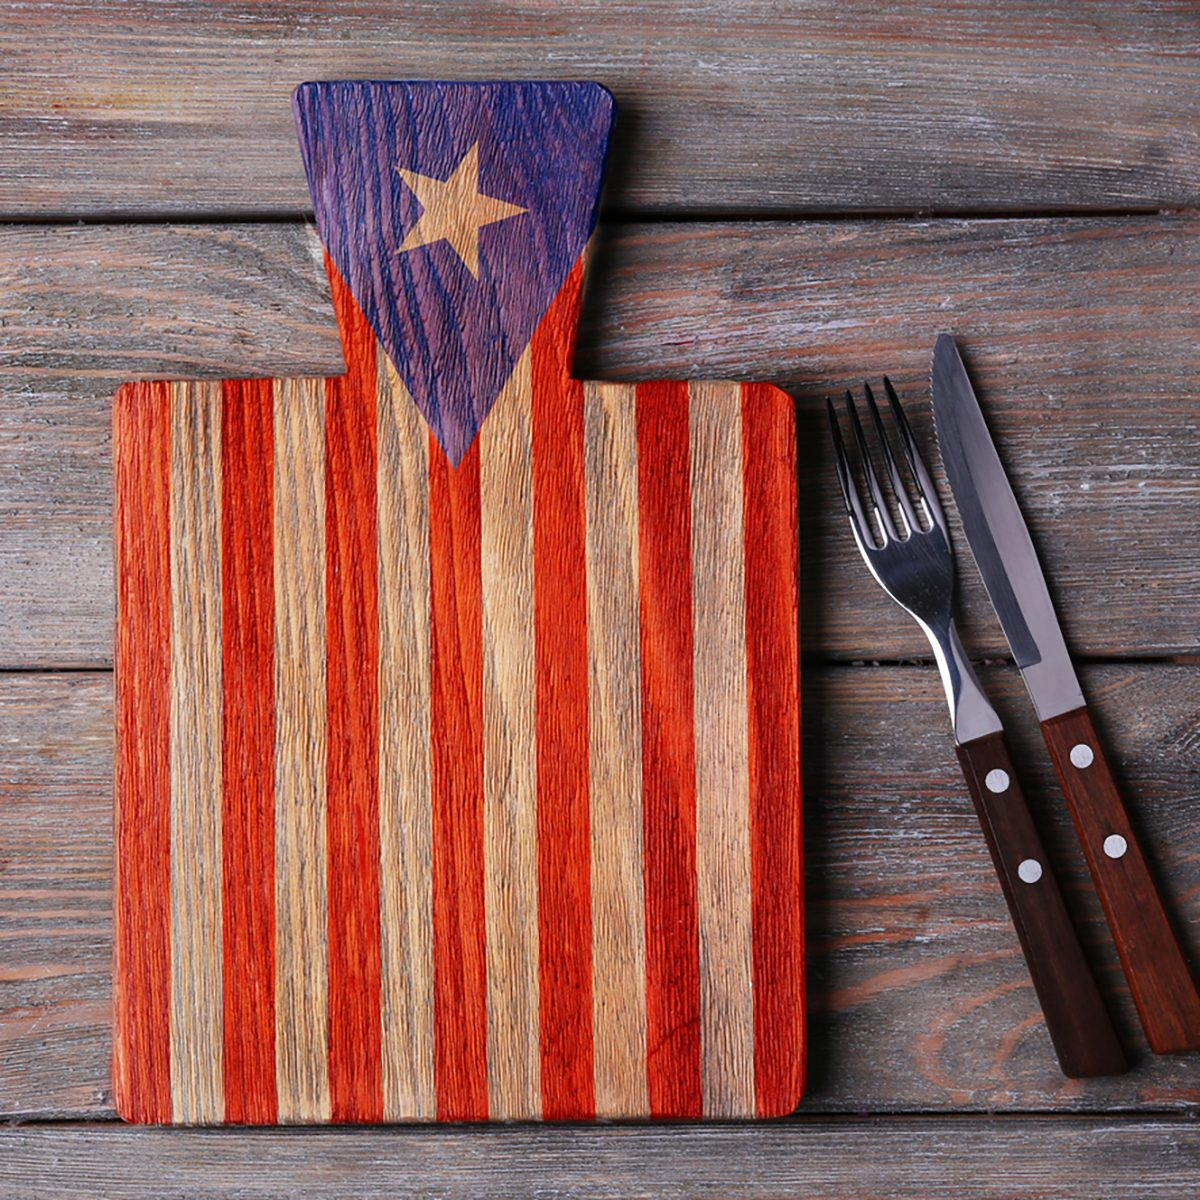 Cutting board with fork and knife on rustic wooden planks background. American cuisine food concept